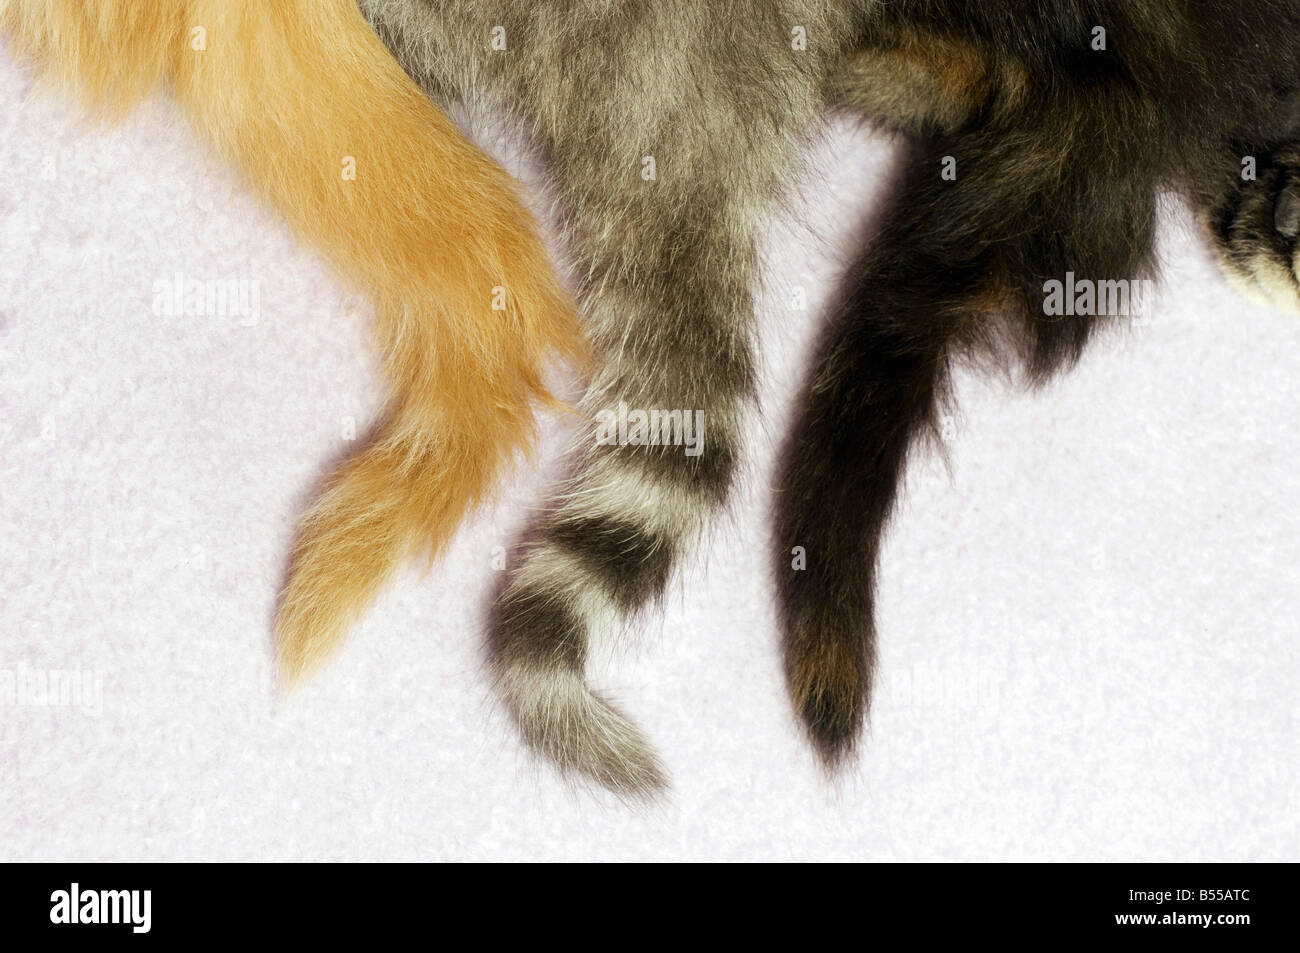 cats - tails - Stock Image